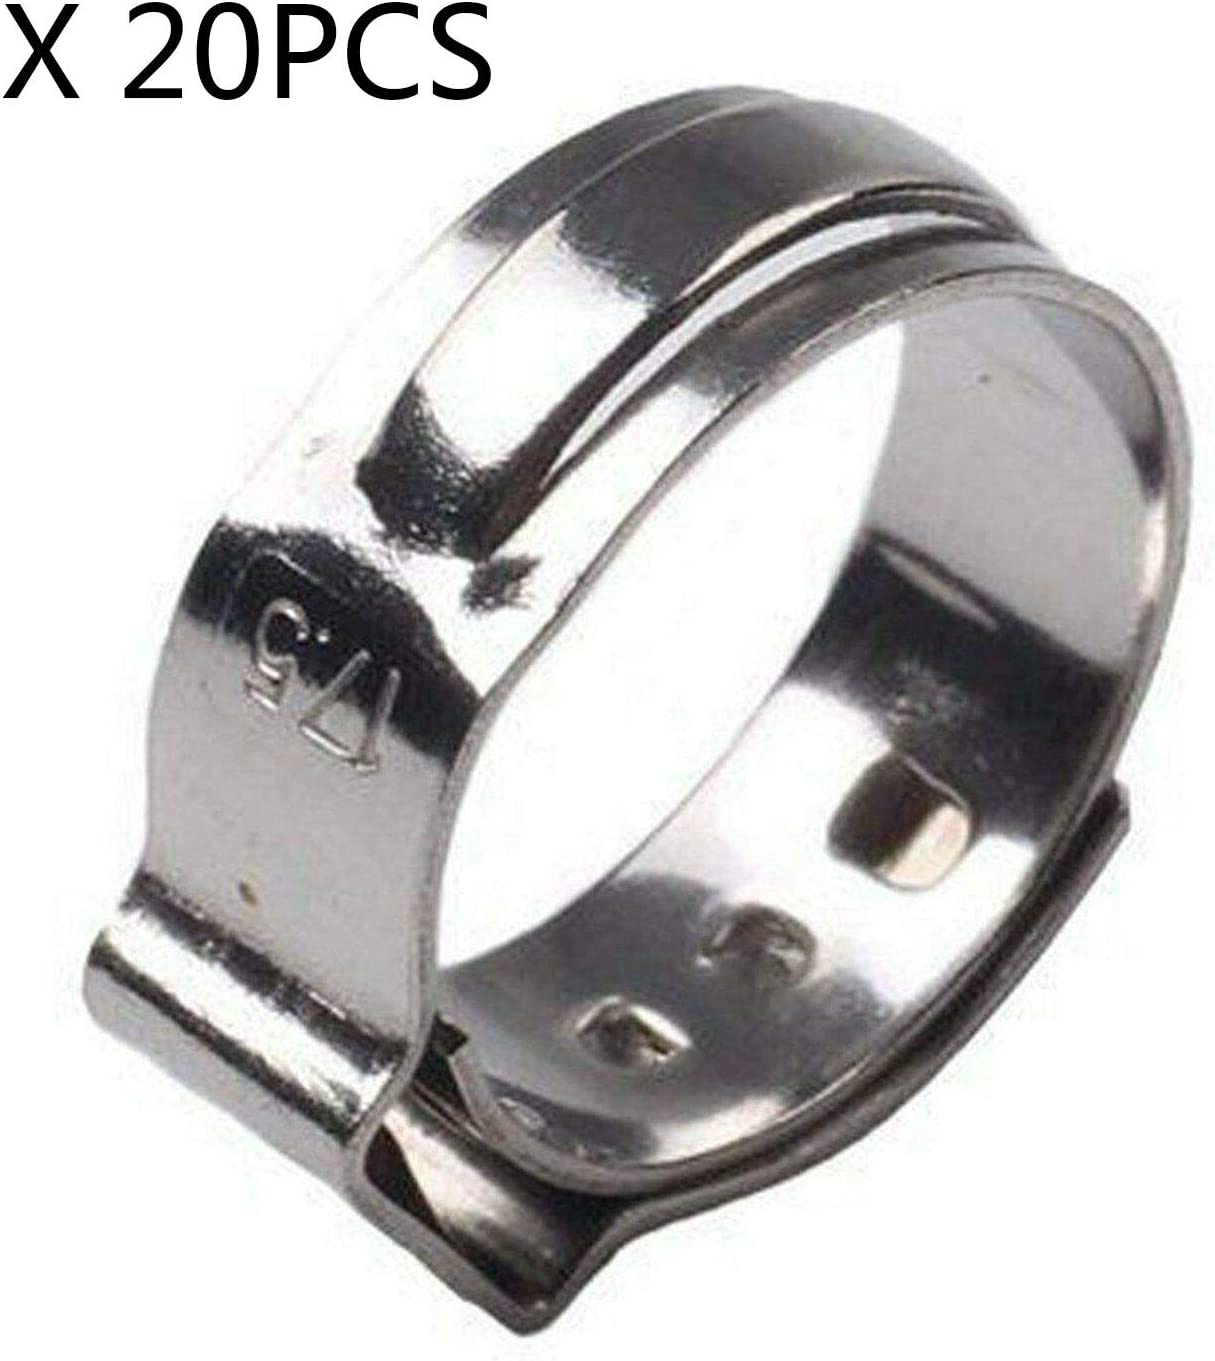 SUPERFASTRACING 20PCS 3//4 inch PEX Stainless Steel Clamp Cinch Rings Crimp Pinch Fitting ASTM